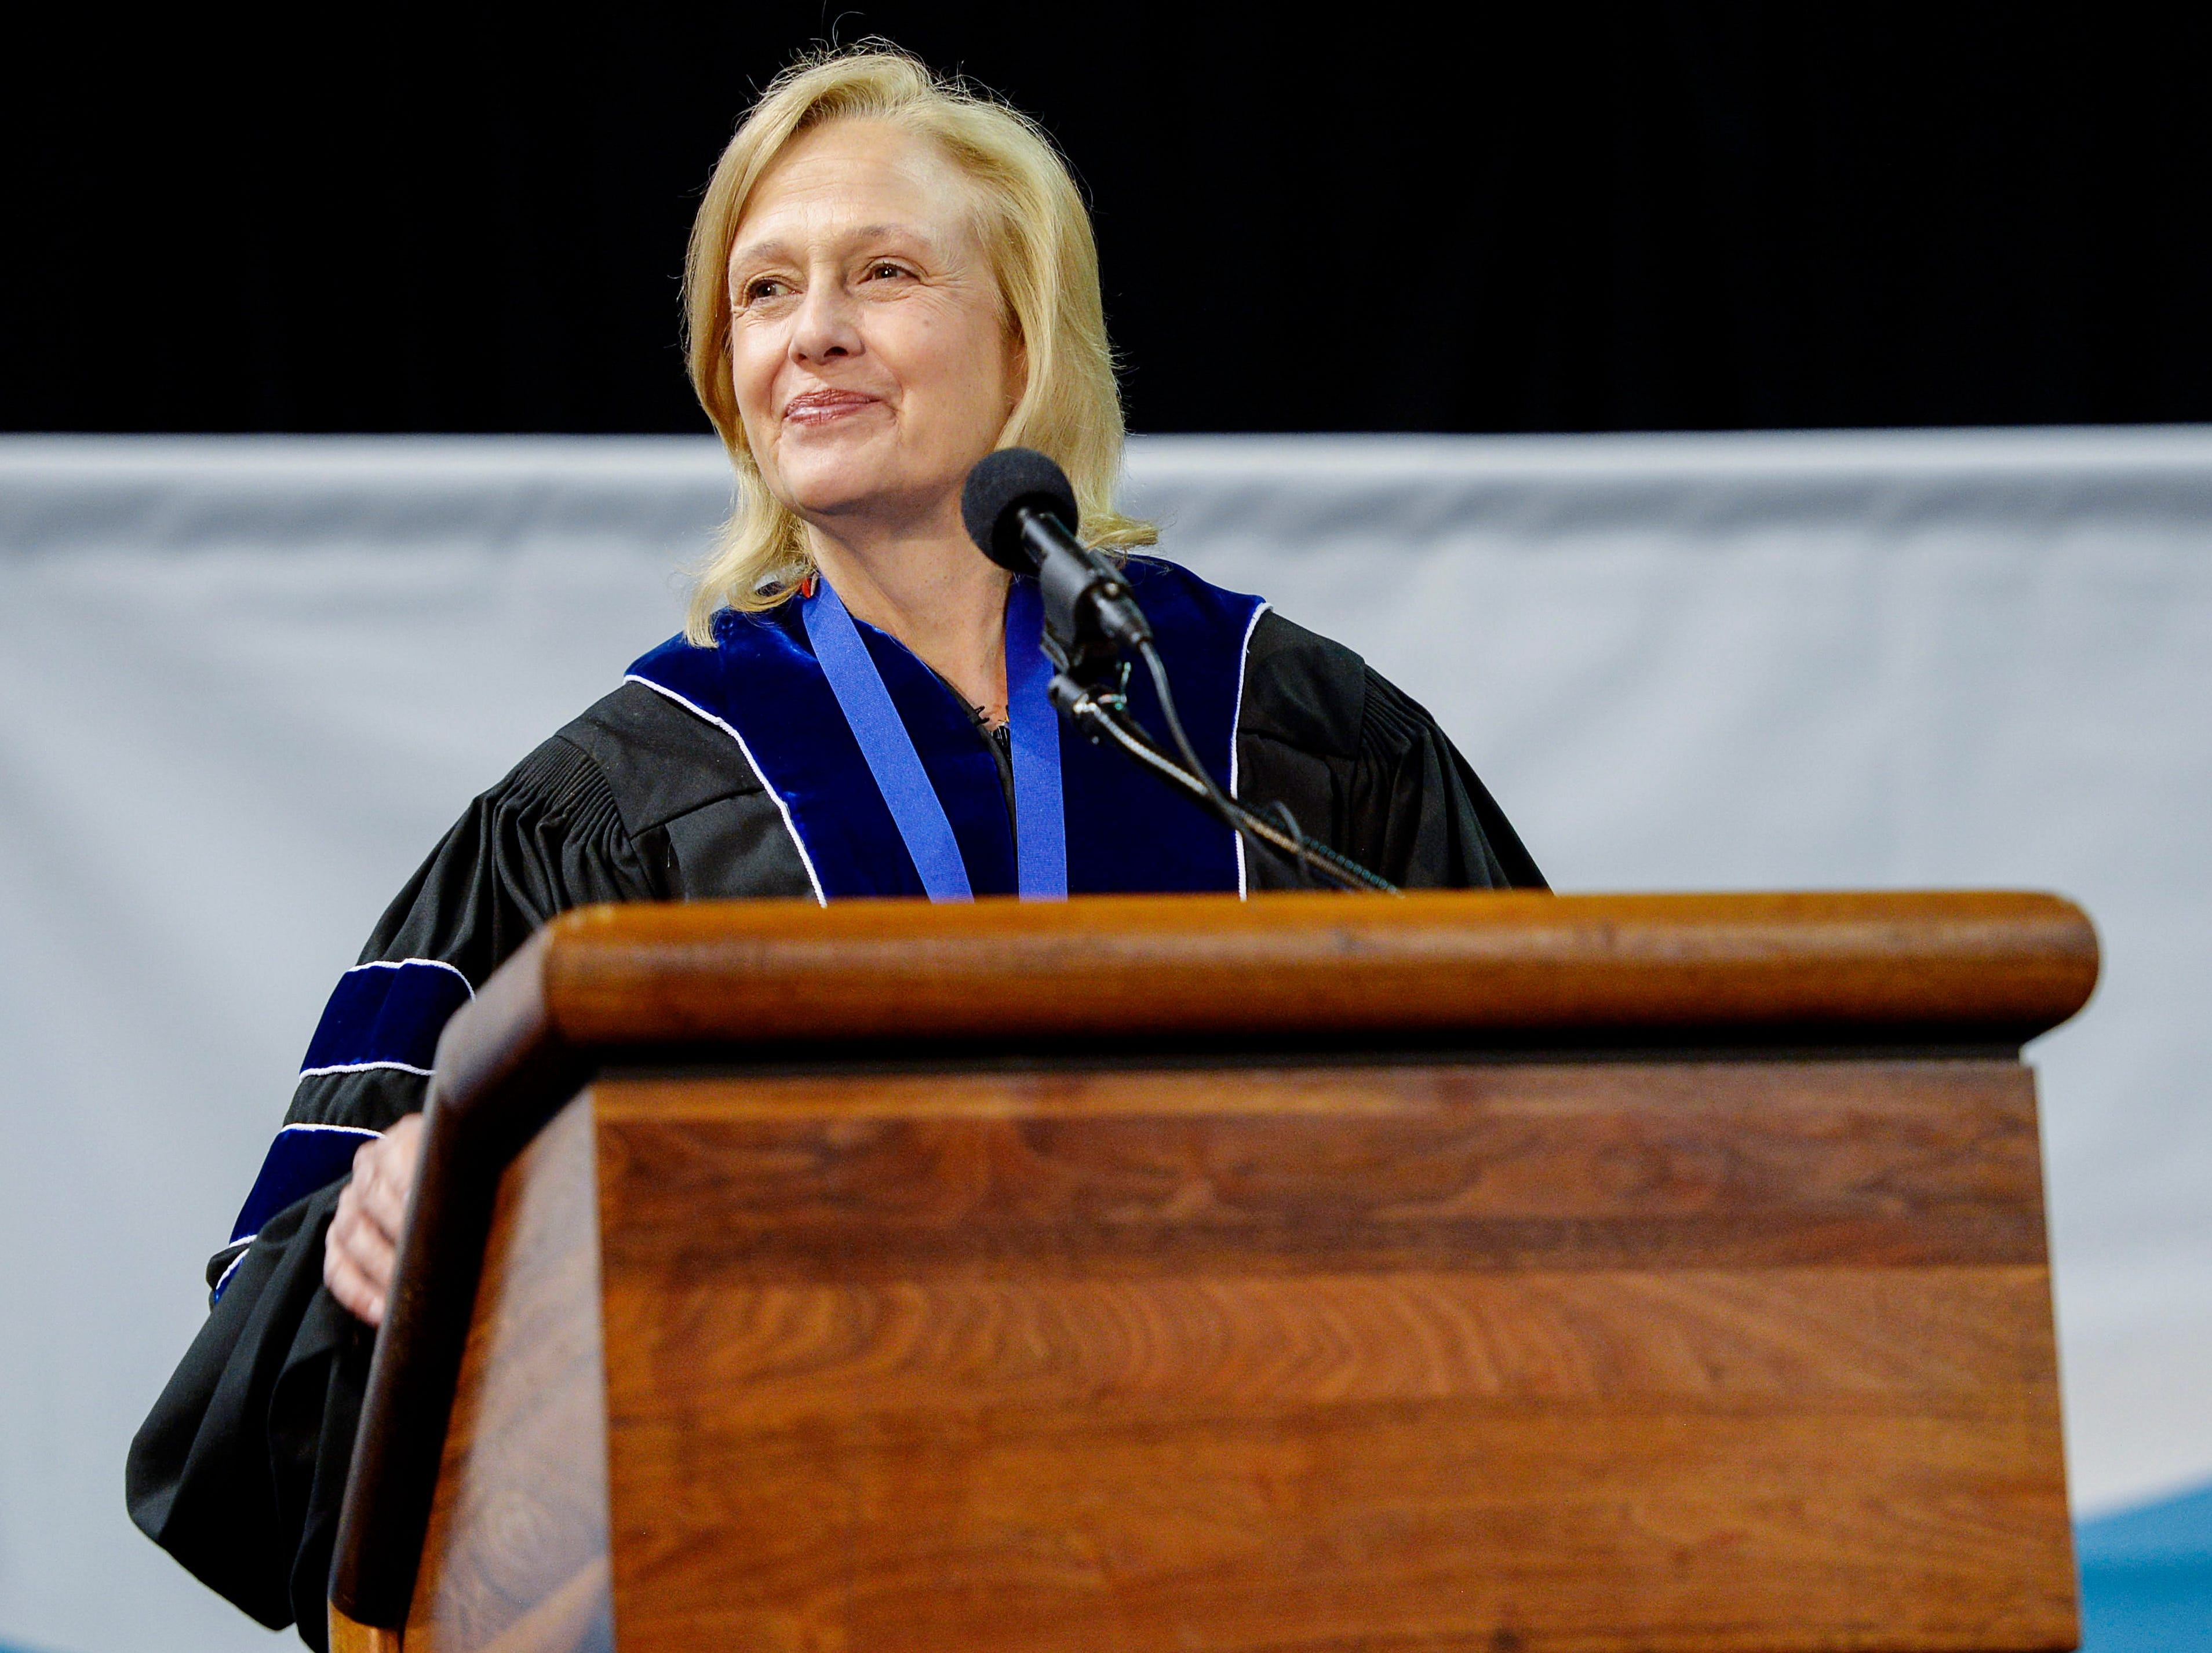 Paula Kerger, president and CEO of PBS, was the speaker at the UNCA commencement ceremony May 11, 2019.